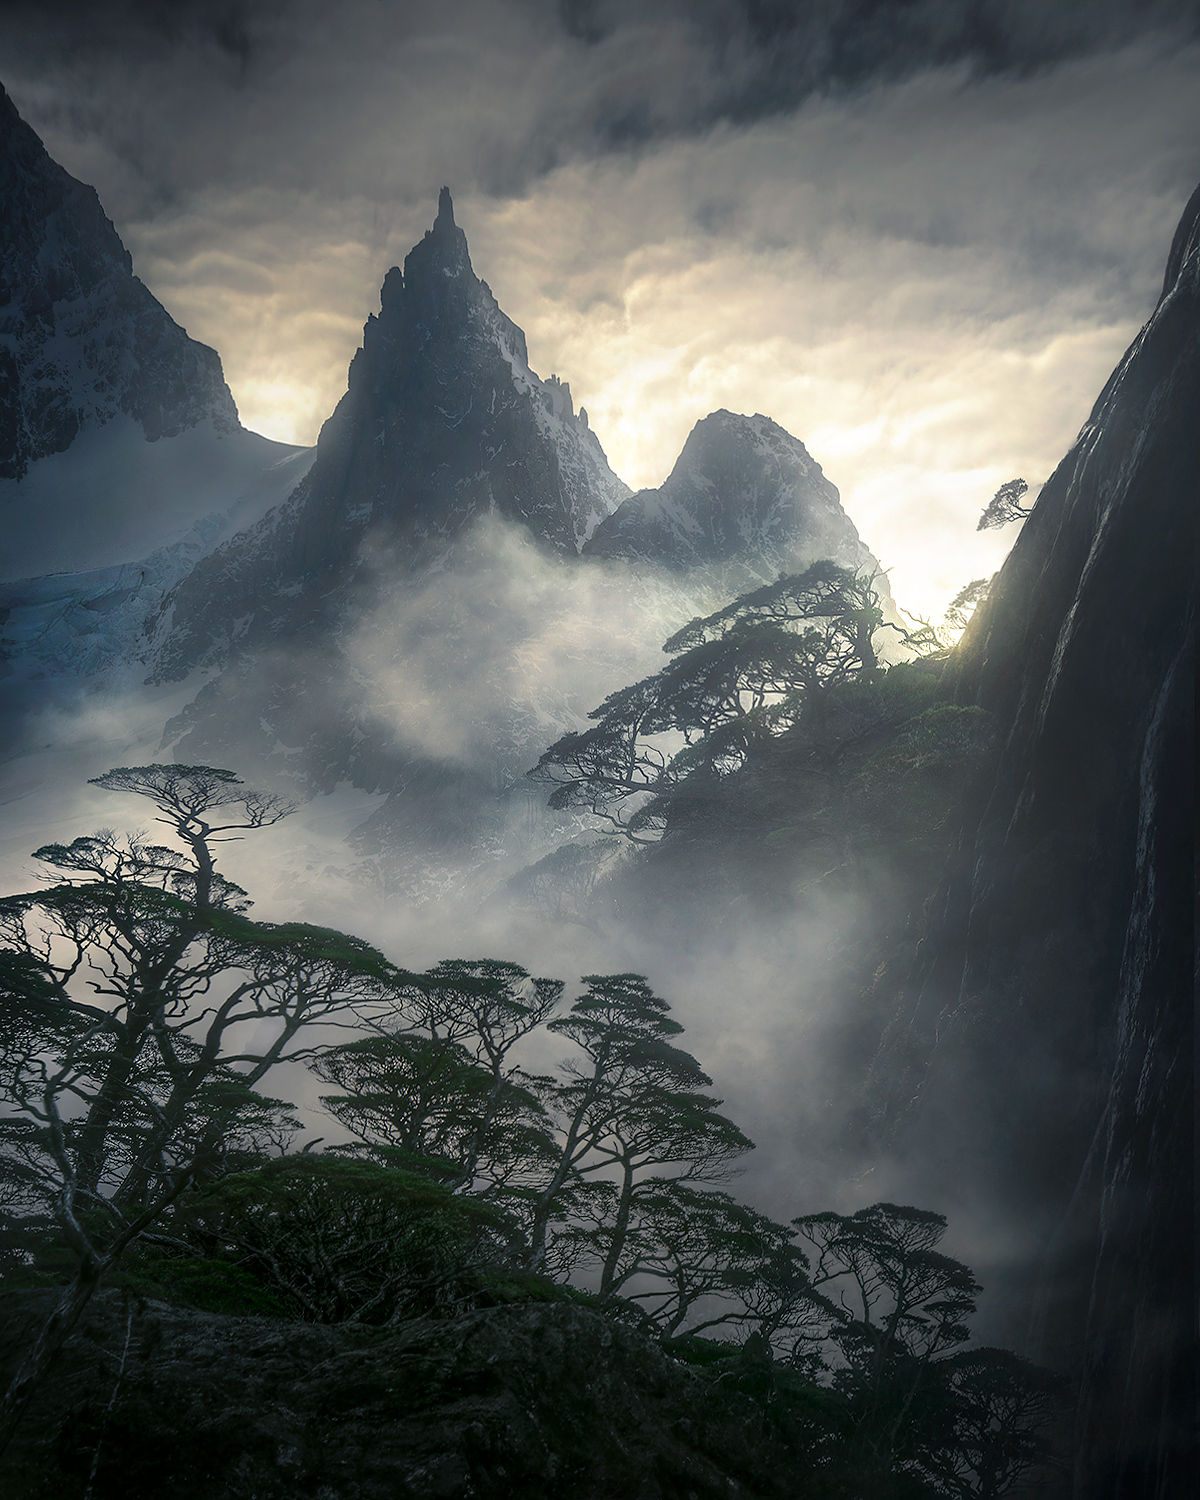 coigue, rainforest, Patagonia, fiords, Chile, peak, misty, photo